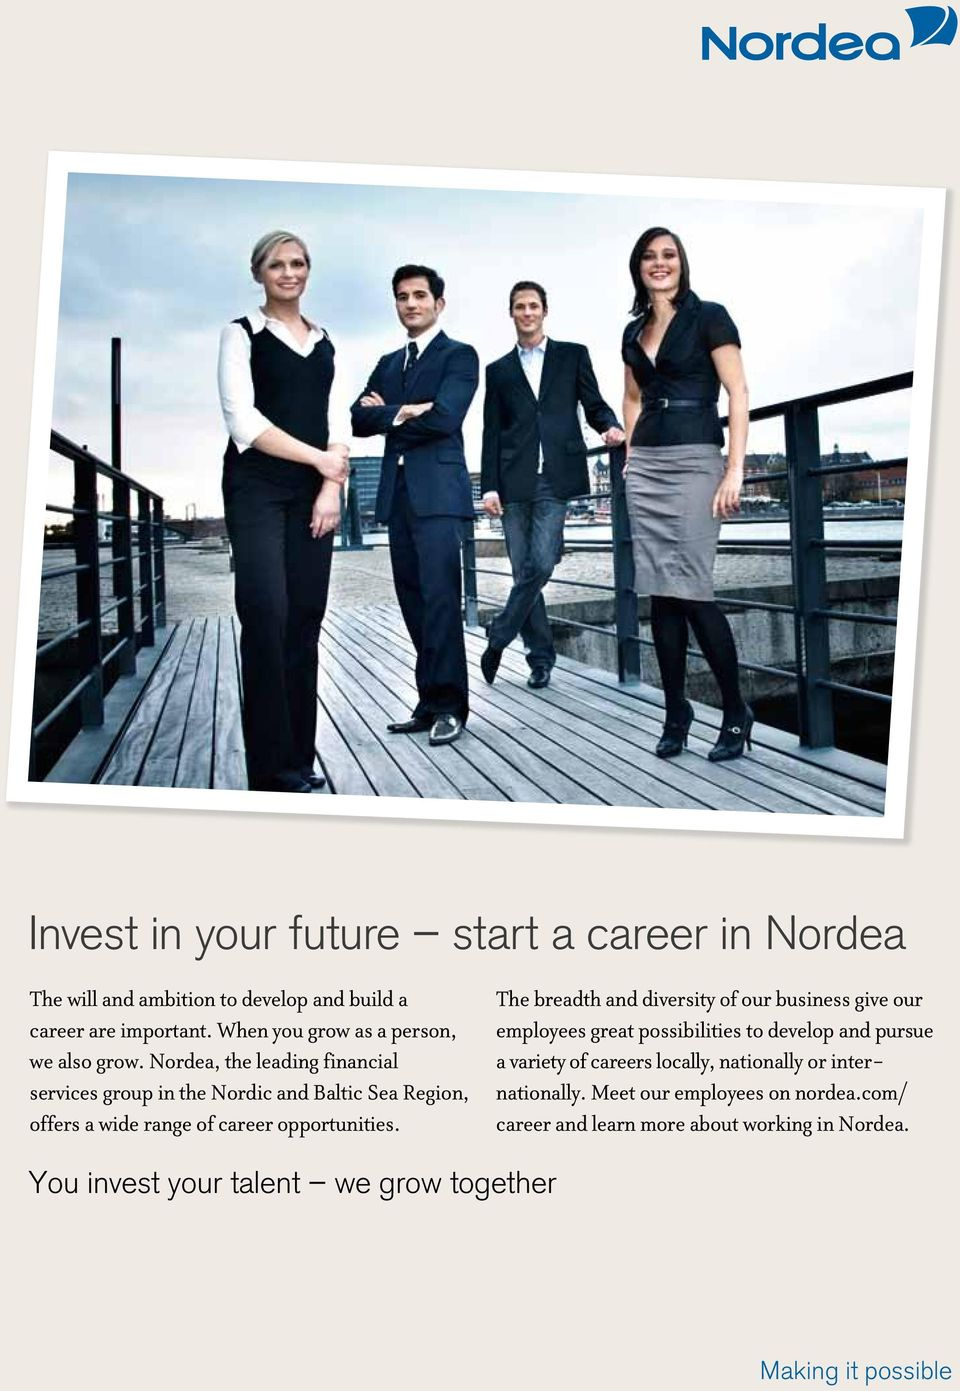 Nordea, the leading financial services group in the Nordic and Baltic Sea Region, offers a wide range of career opportunities.